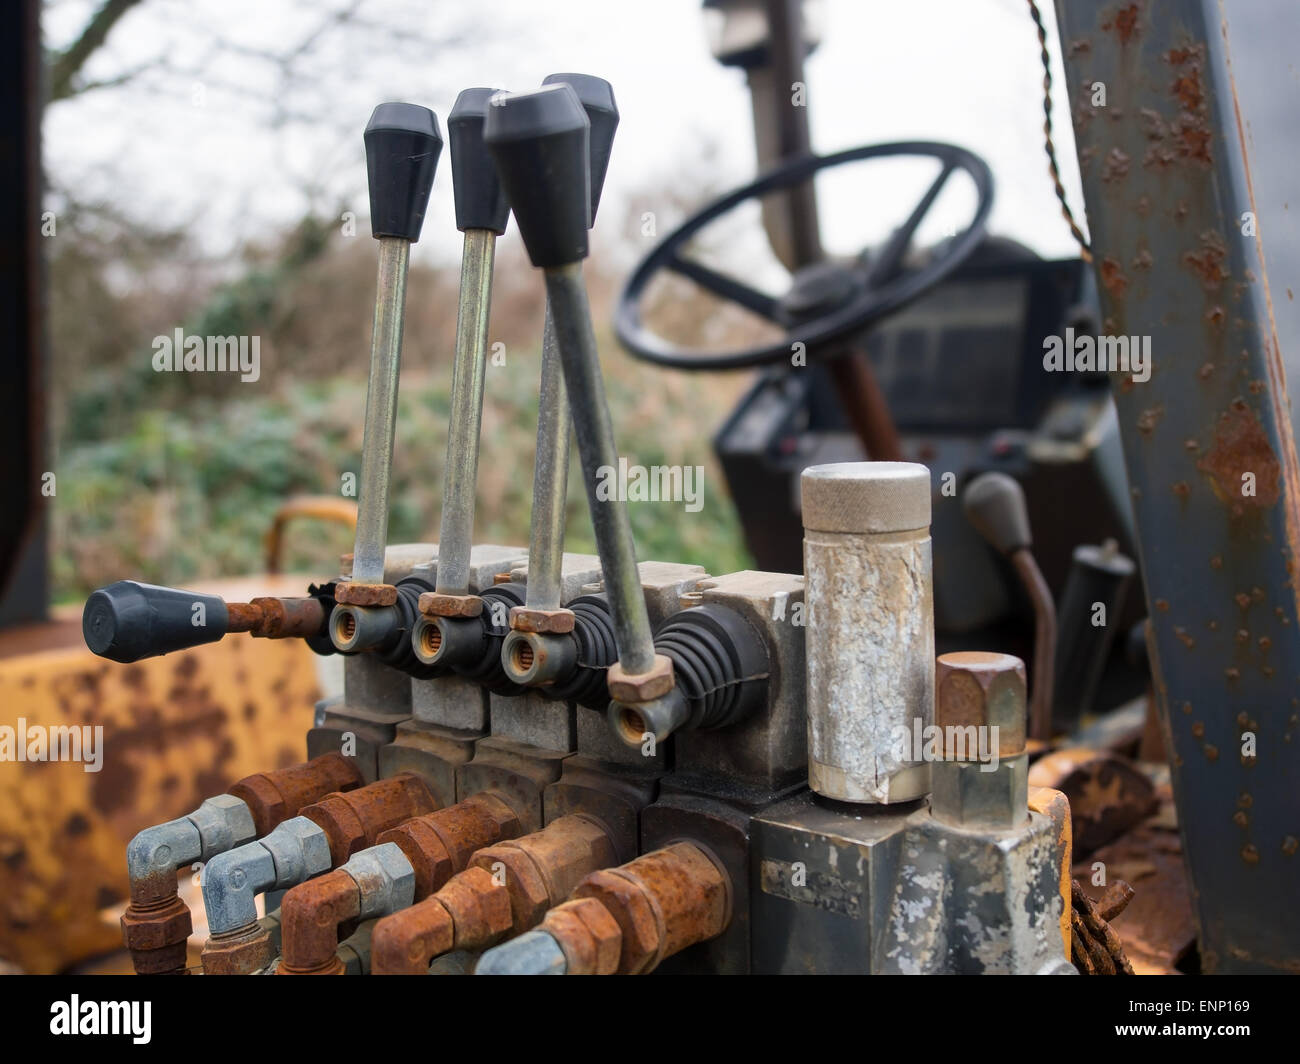 Rusty hydraulic valves and levers in the cab of an old tractor. - Stock Image